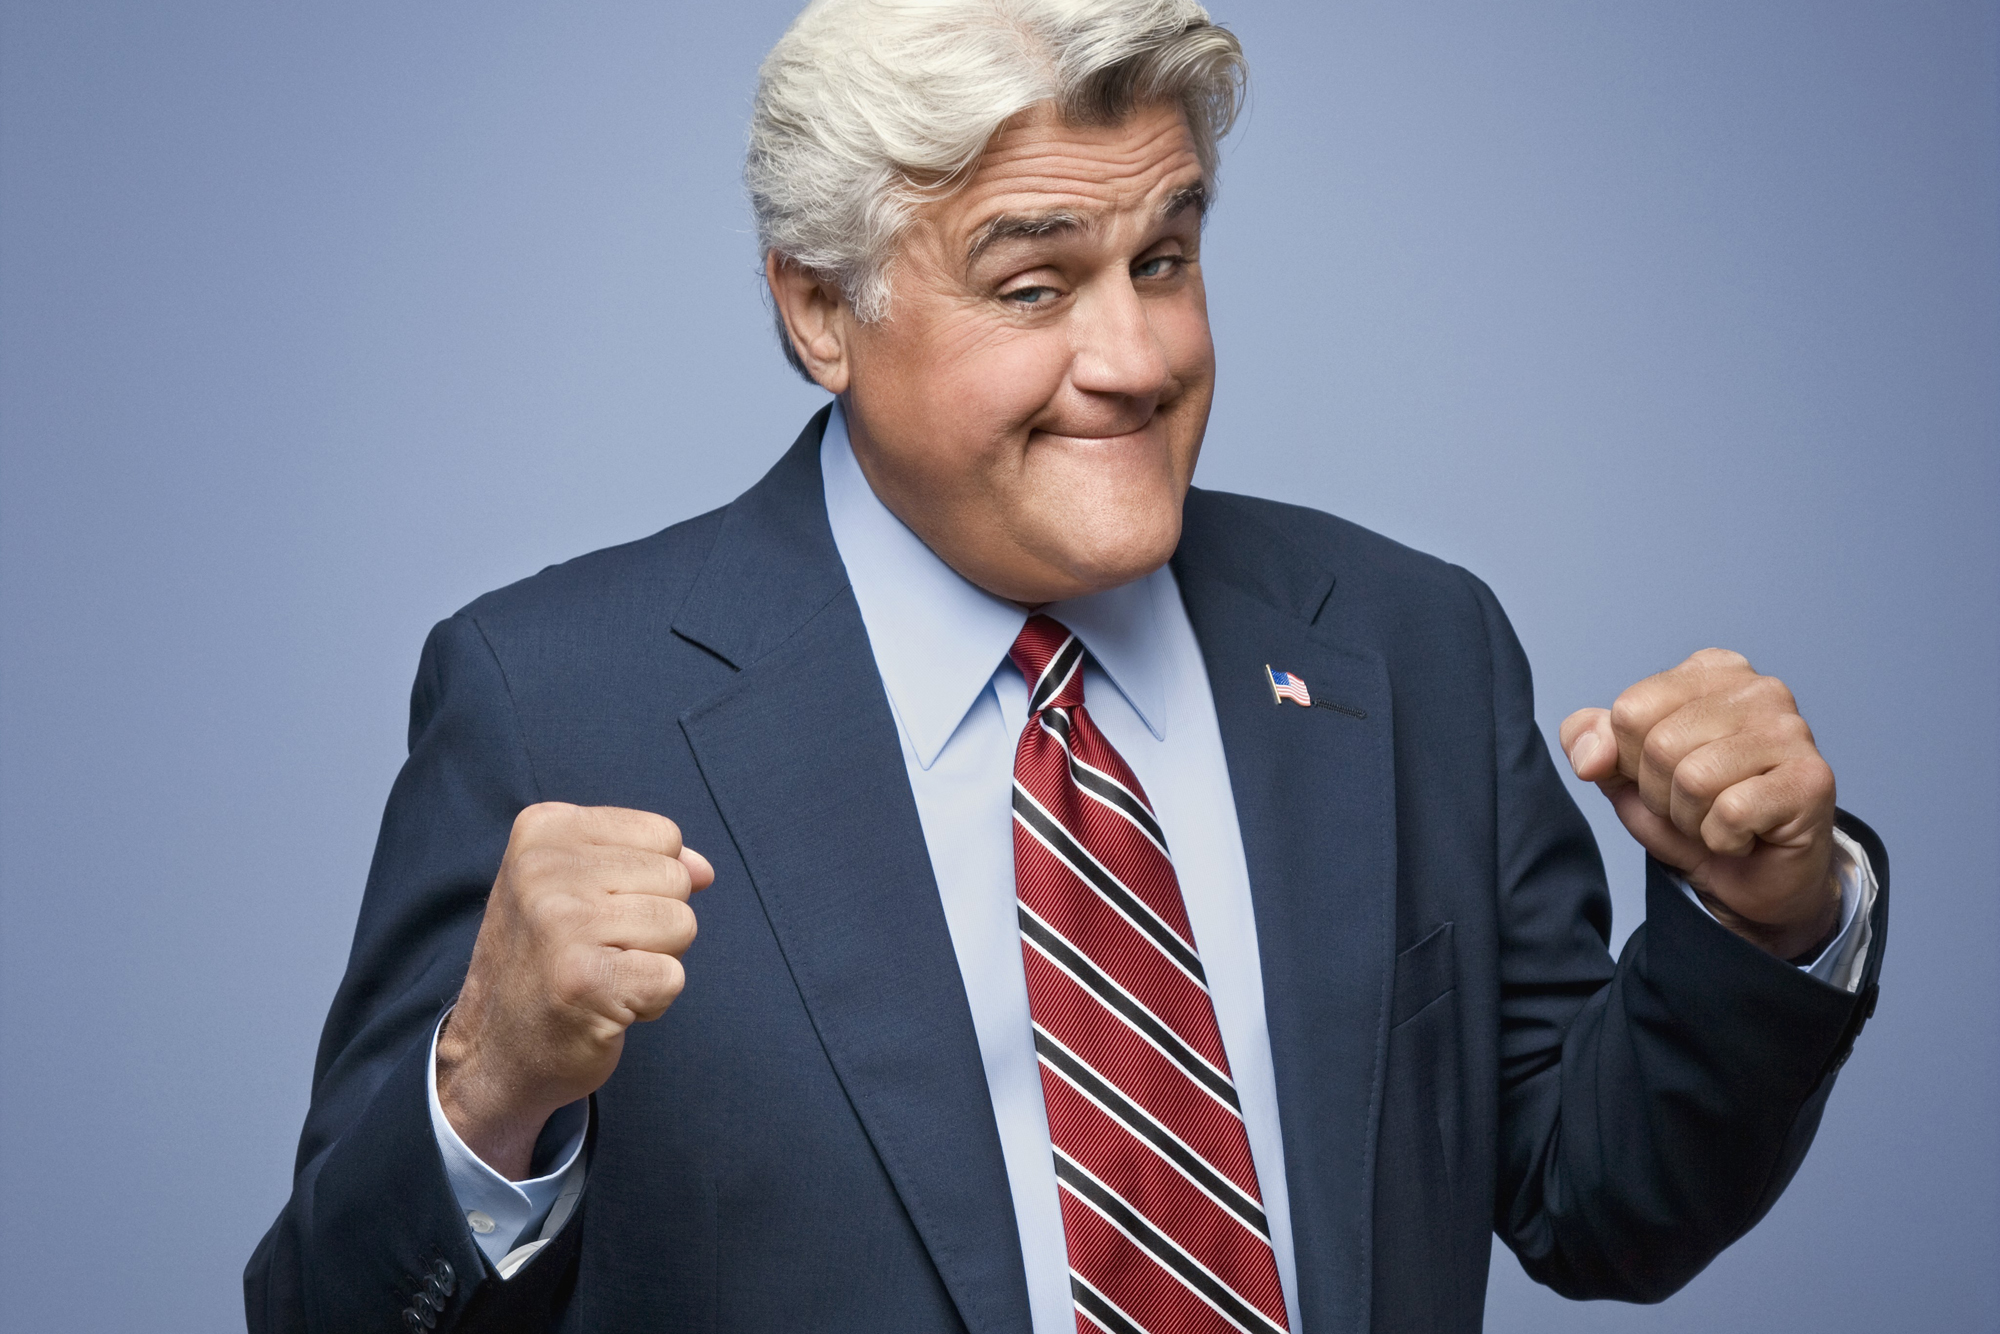 jay leno how tall